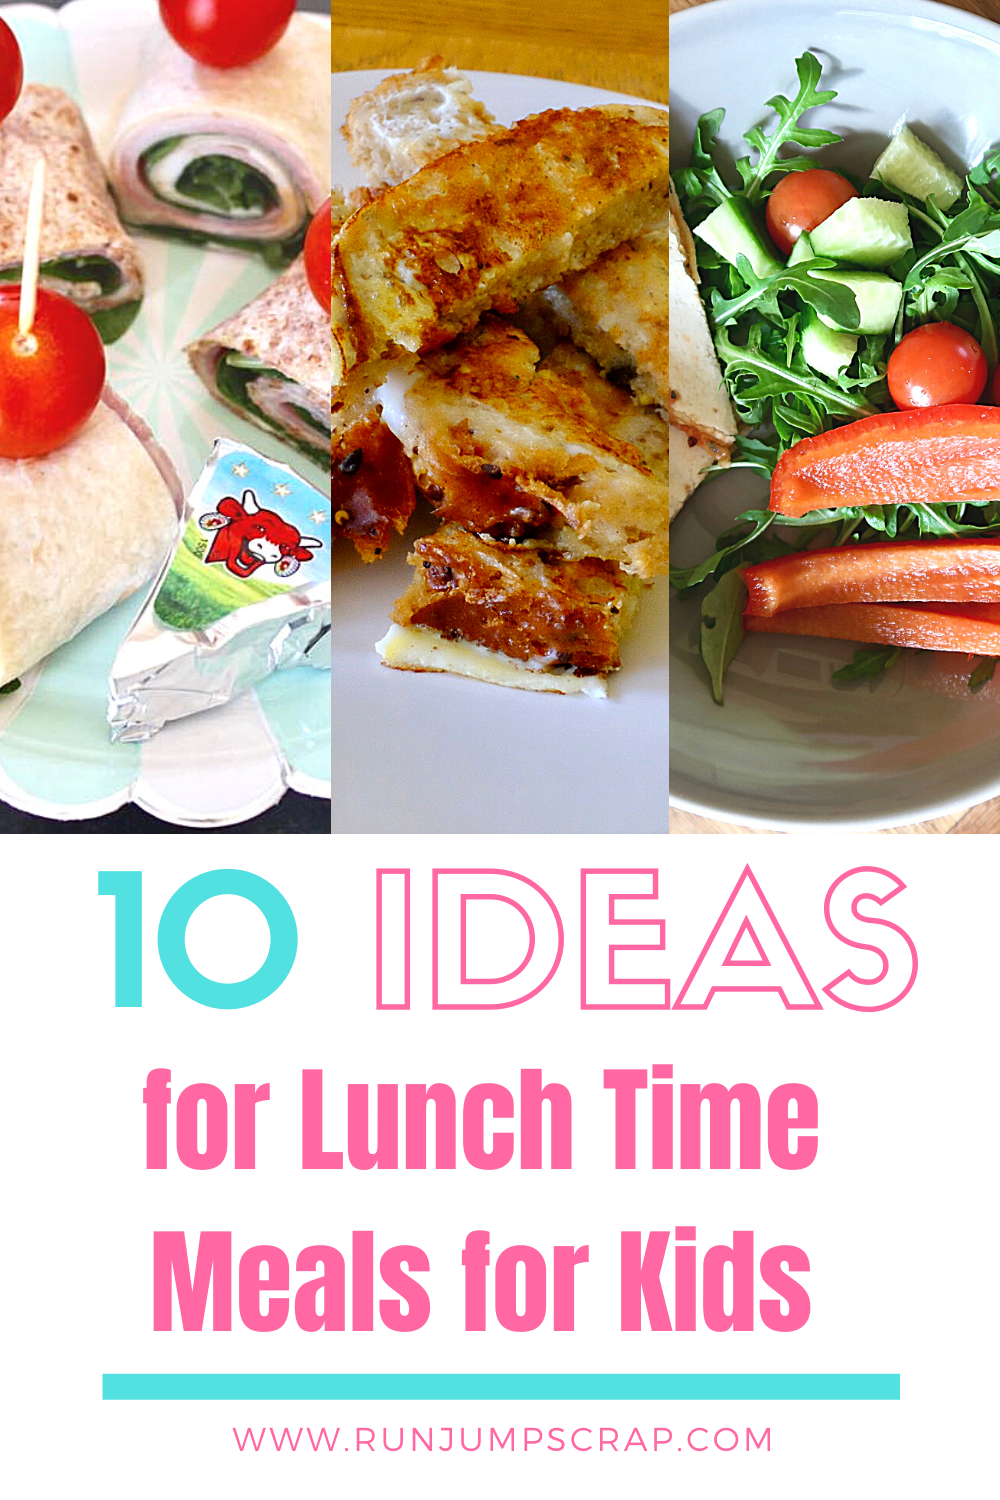 10 lunchtime meals for kids